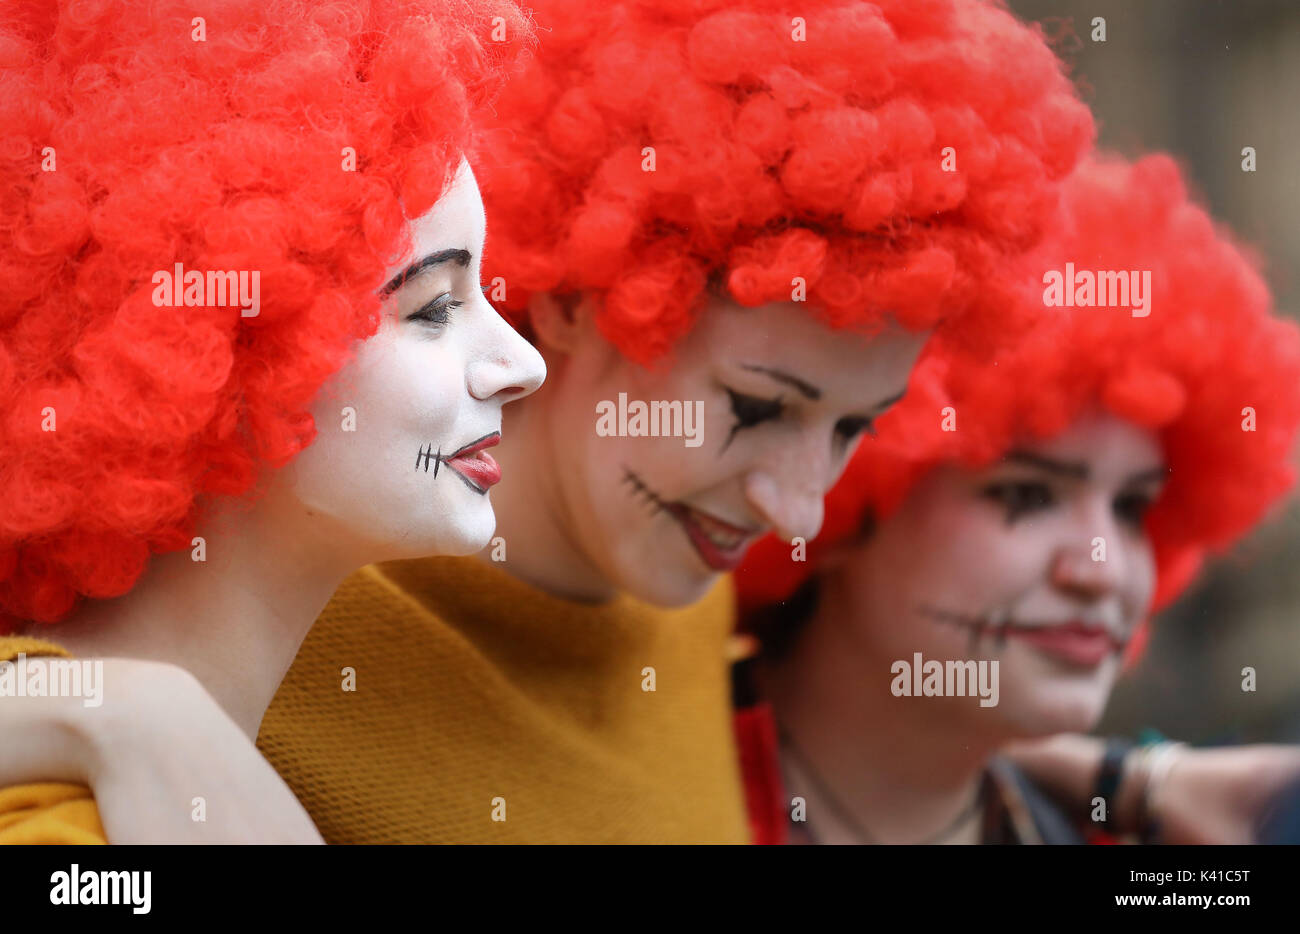 Supporters of workers from McDonald's restaurants in Cambridge and Crayford, SE London, during a rally at Old Palace Yard, London, after they voted overwhelmingly in favour of industrial action, amid concerns over working conditions and the use of zero-hour contracts. - Stock Image